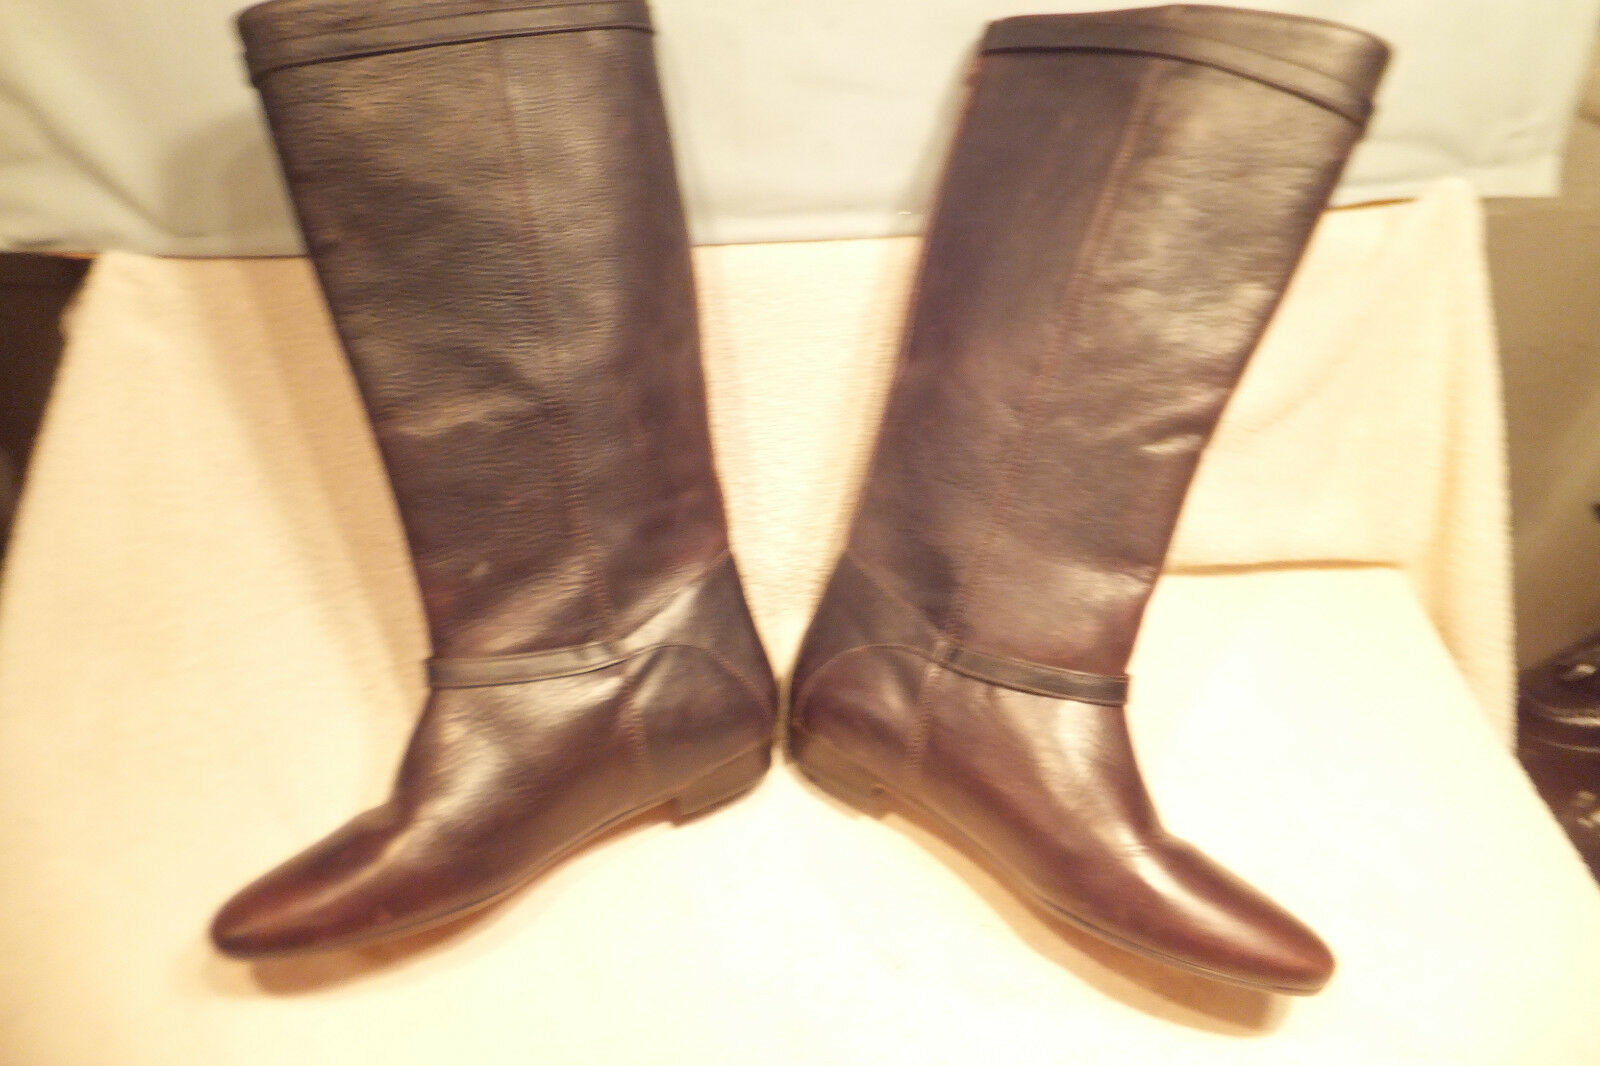 Frye   77985 Brown Pebbled Distressed Distressed Distressed Leather 13.5  Tall Size 6M NEVER WORN e780fb